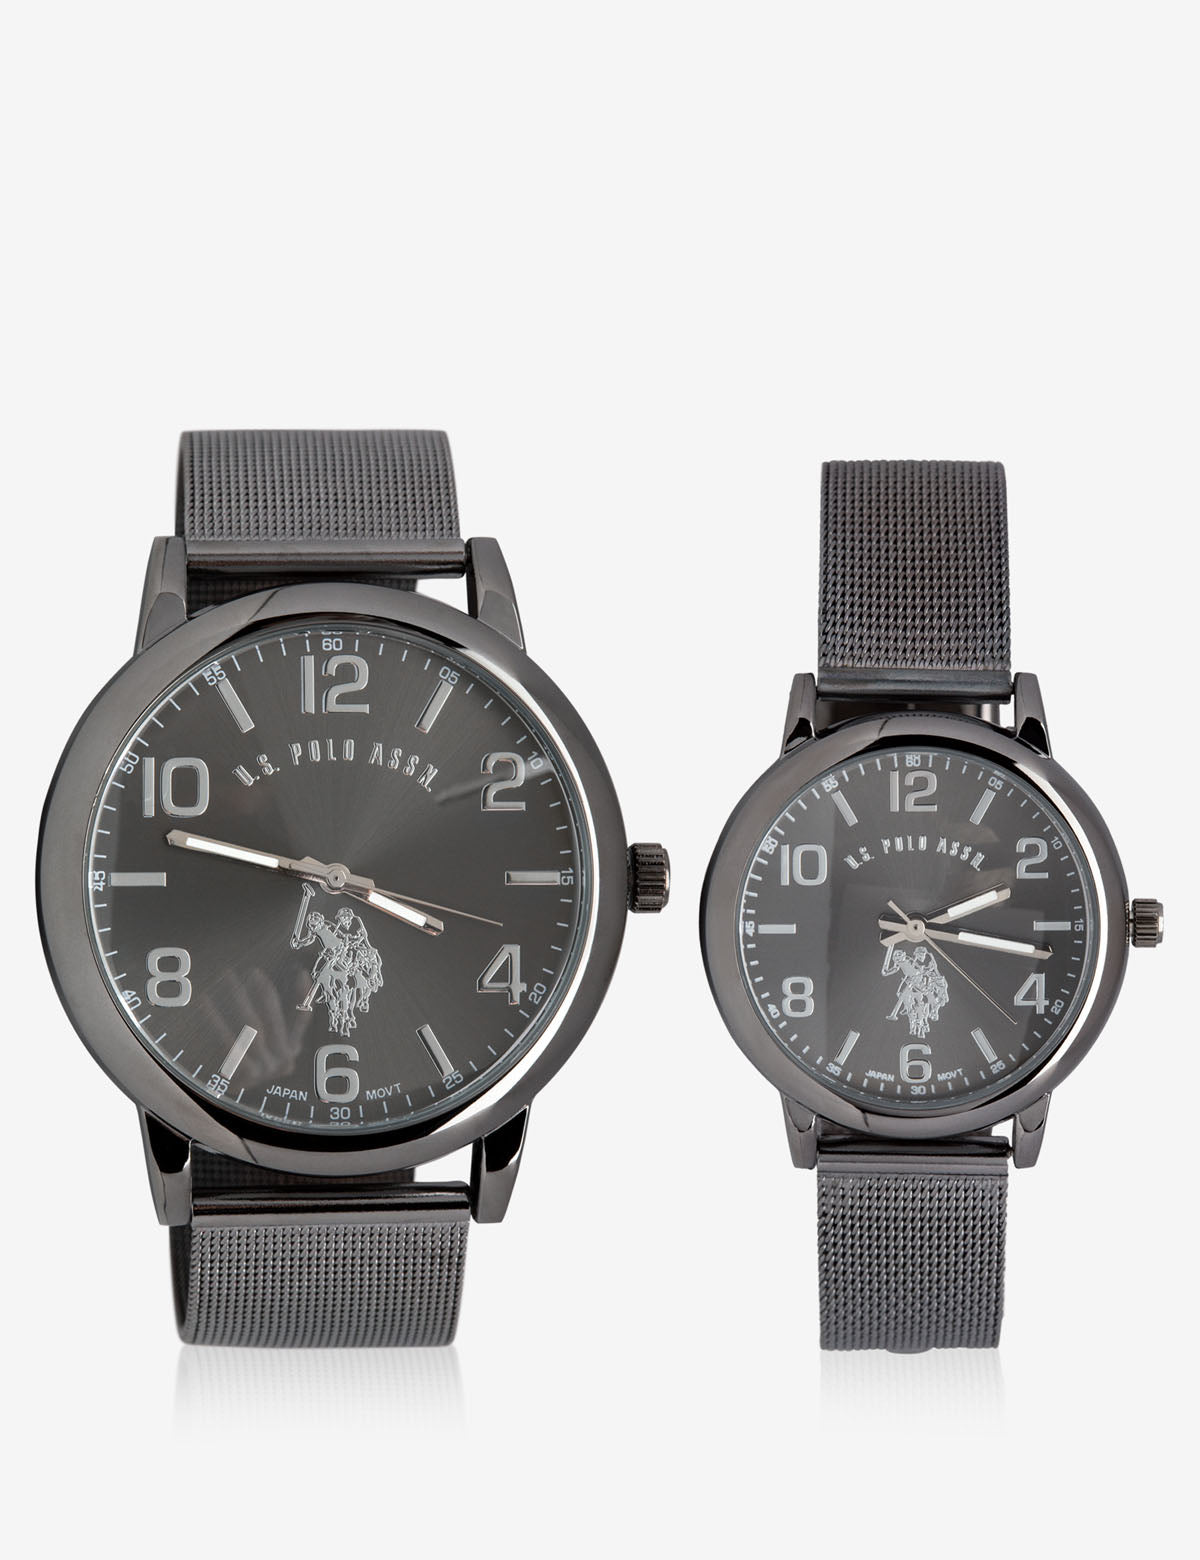 HIS & HERS BLACK MESH STRAP WATCH SET